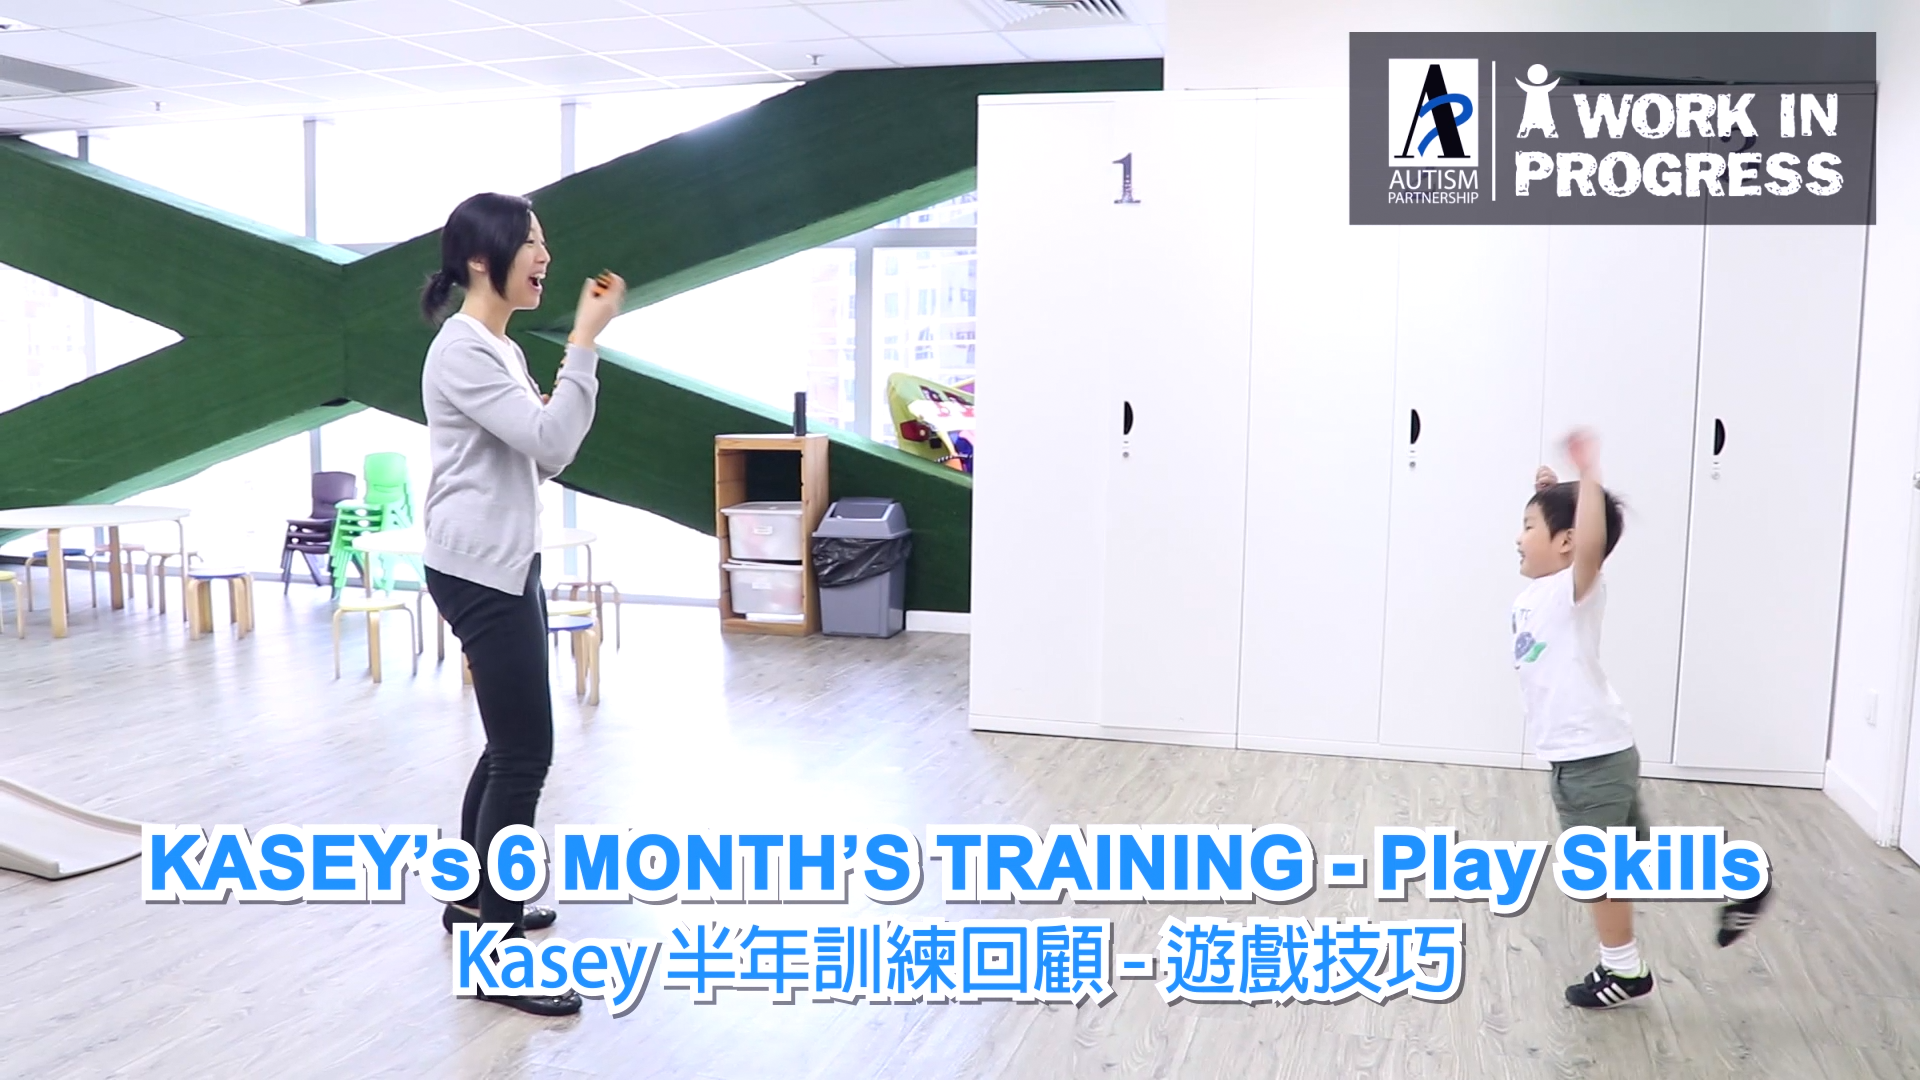 kaseys-6-months-training-play-skills